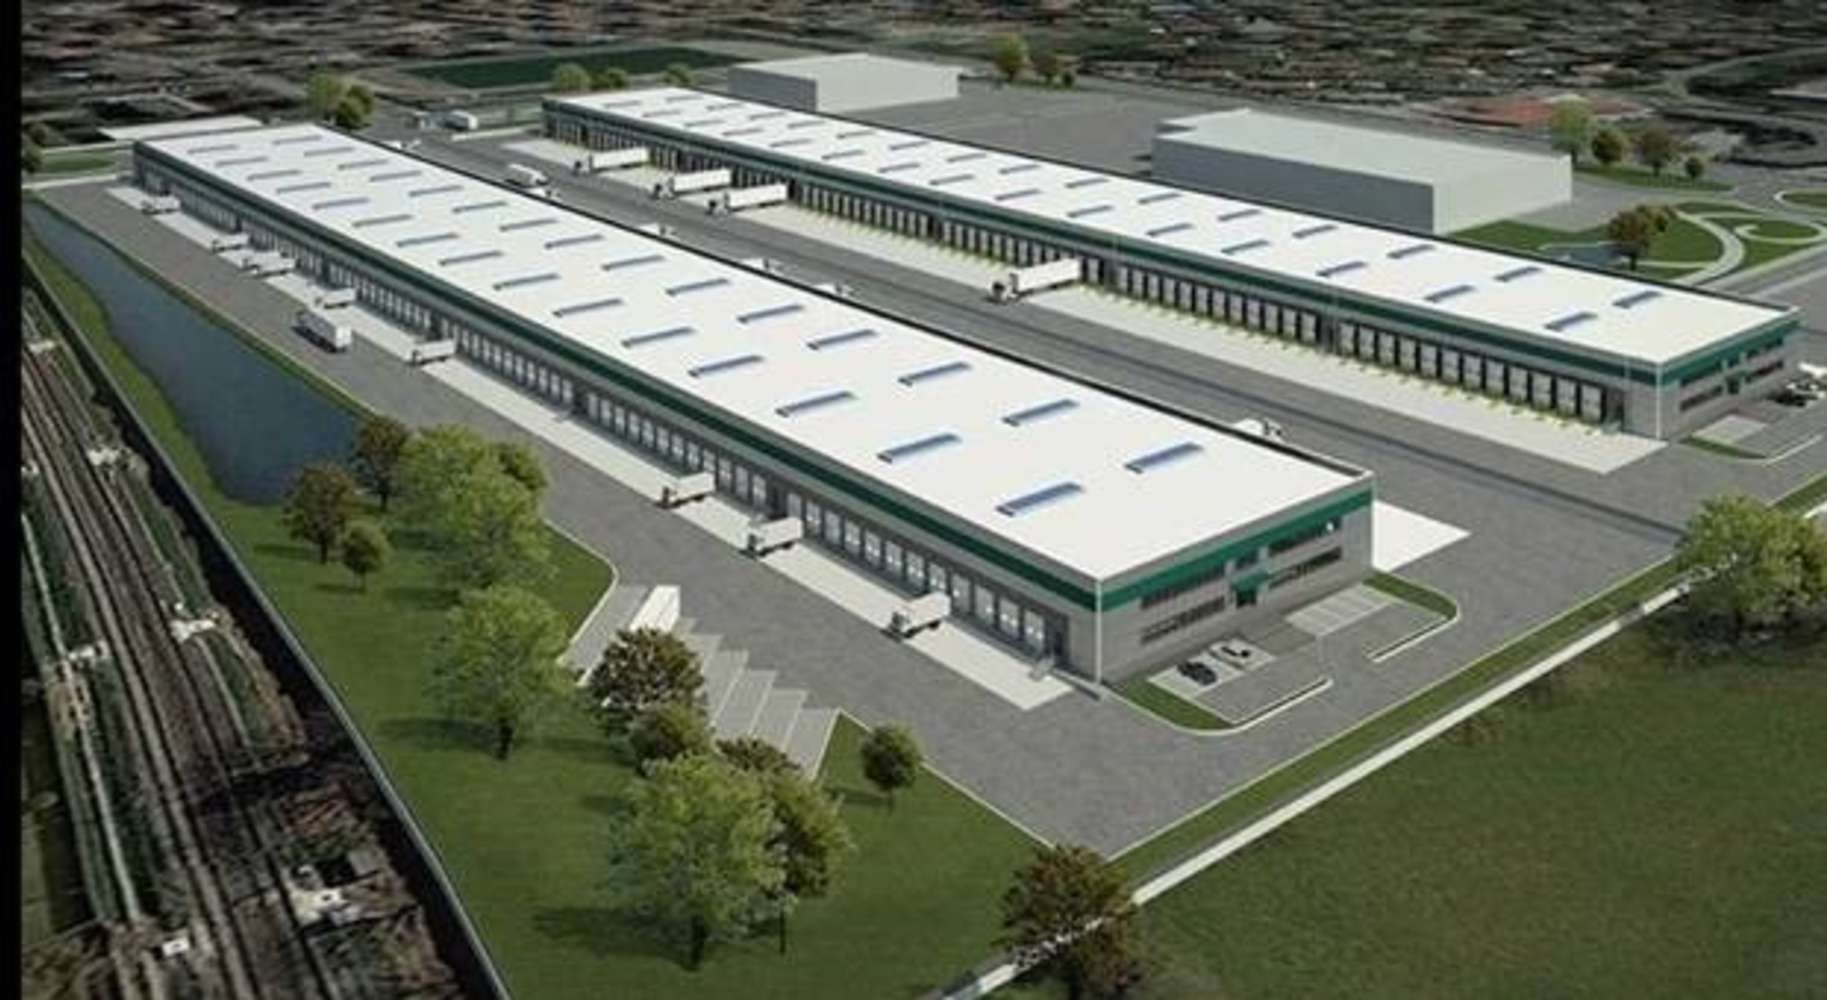 Magazzini industriali e logistici Cassina de pecchi, 20060 - Area logistica Cassina de Pecchi - 10516152